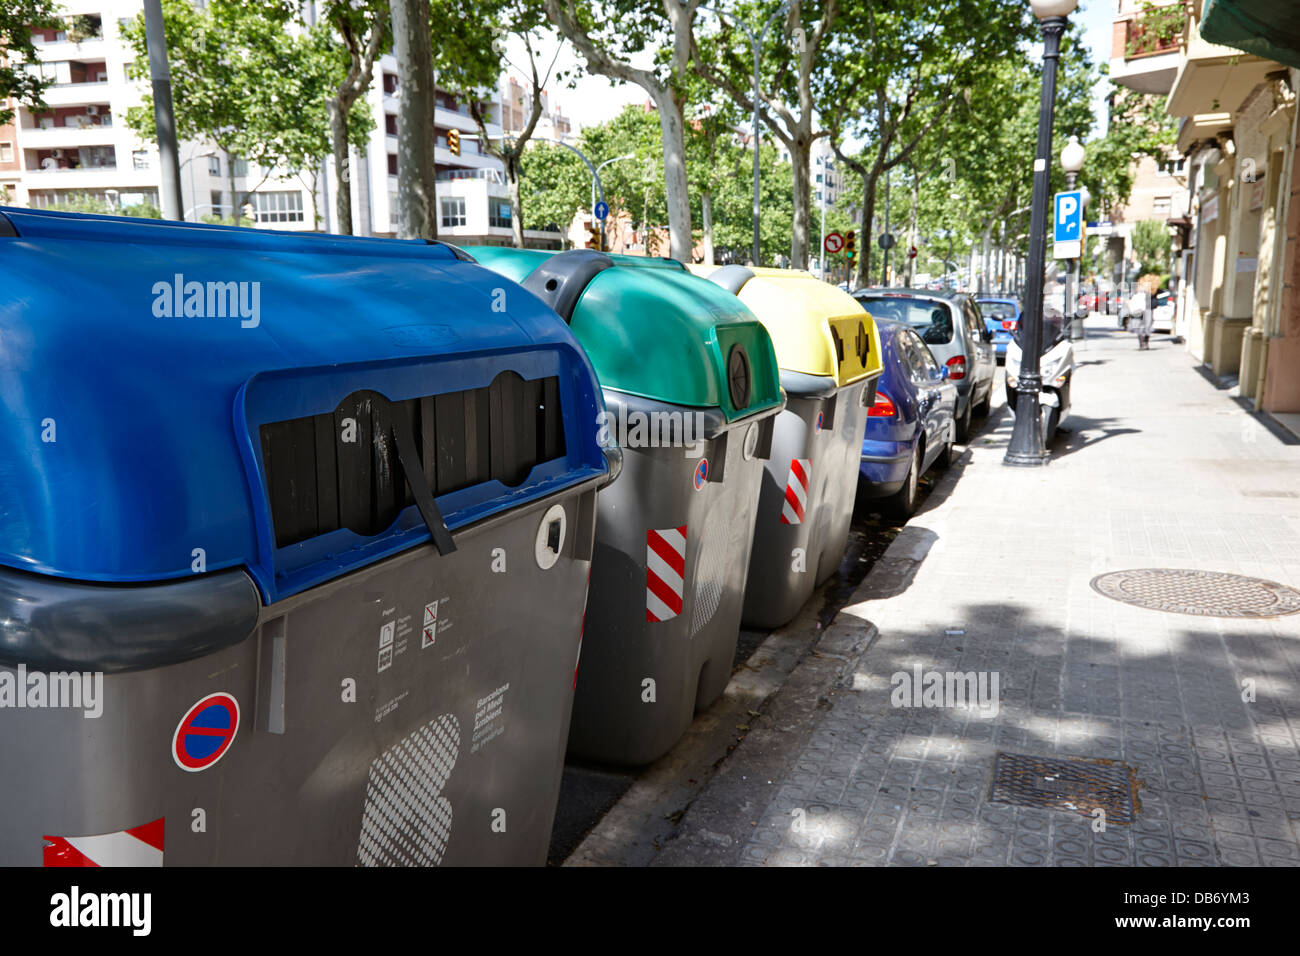 communal kerbside recycling bins for apartment block in Barcelona Catalonia Spain - Stock Image